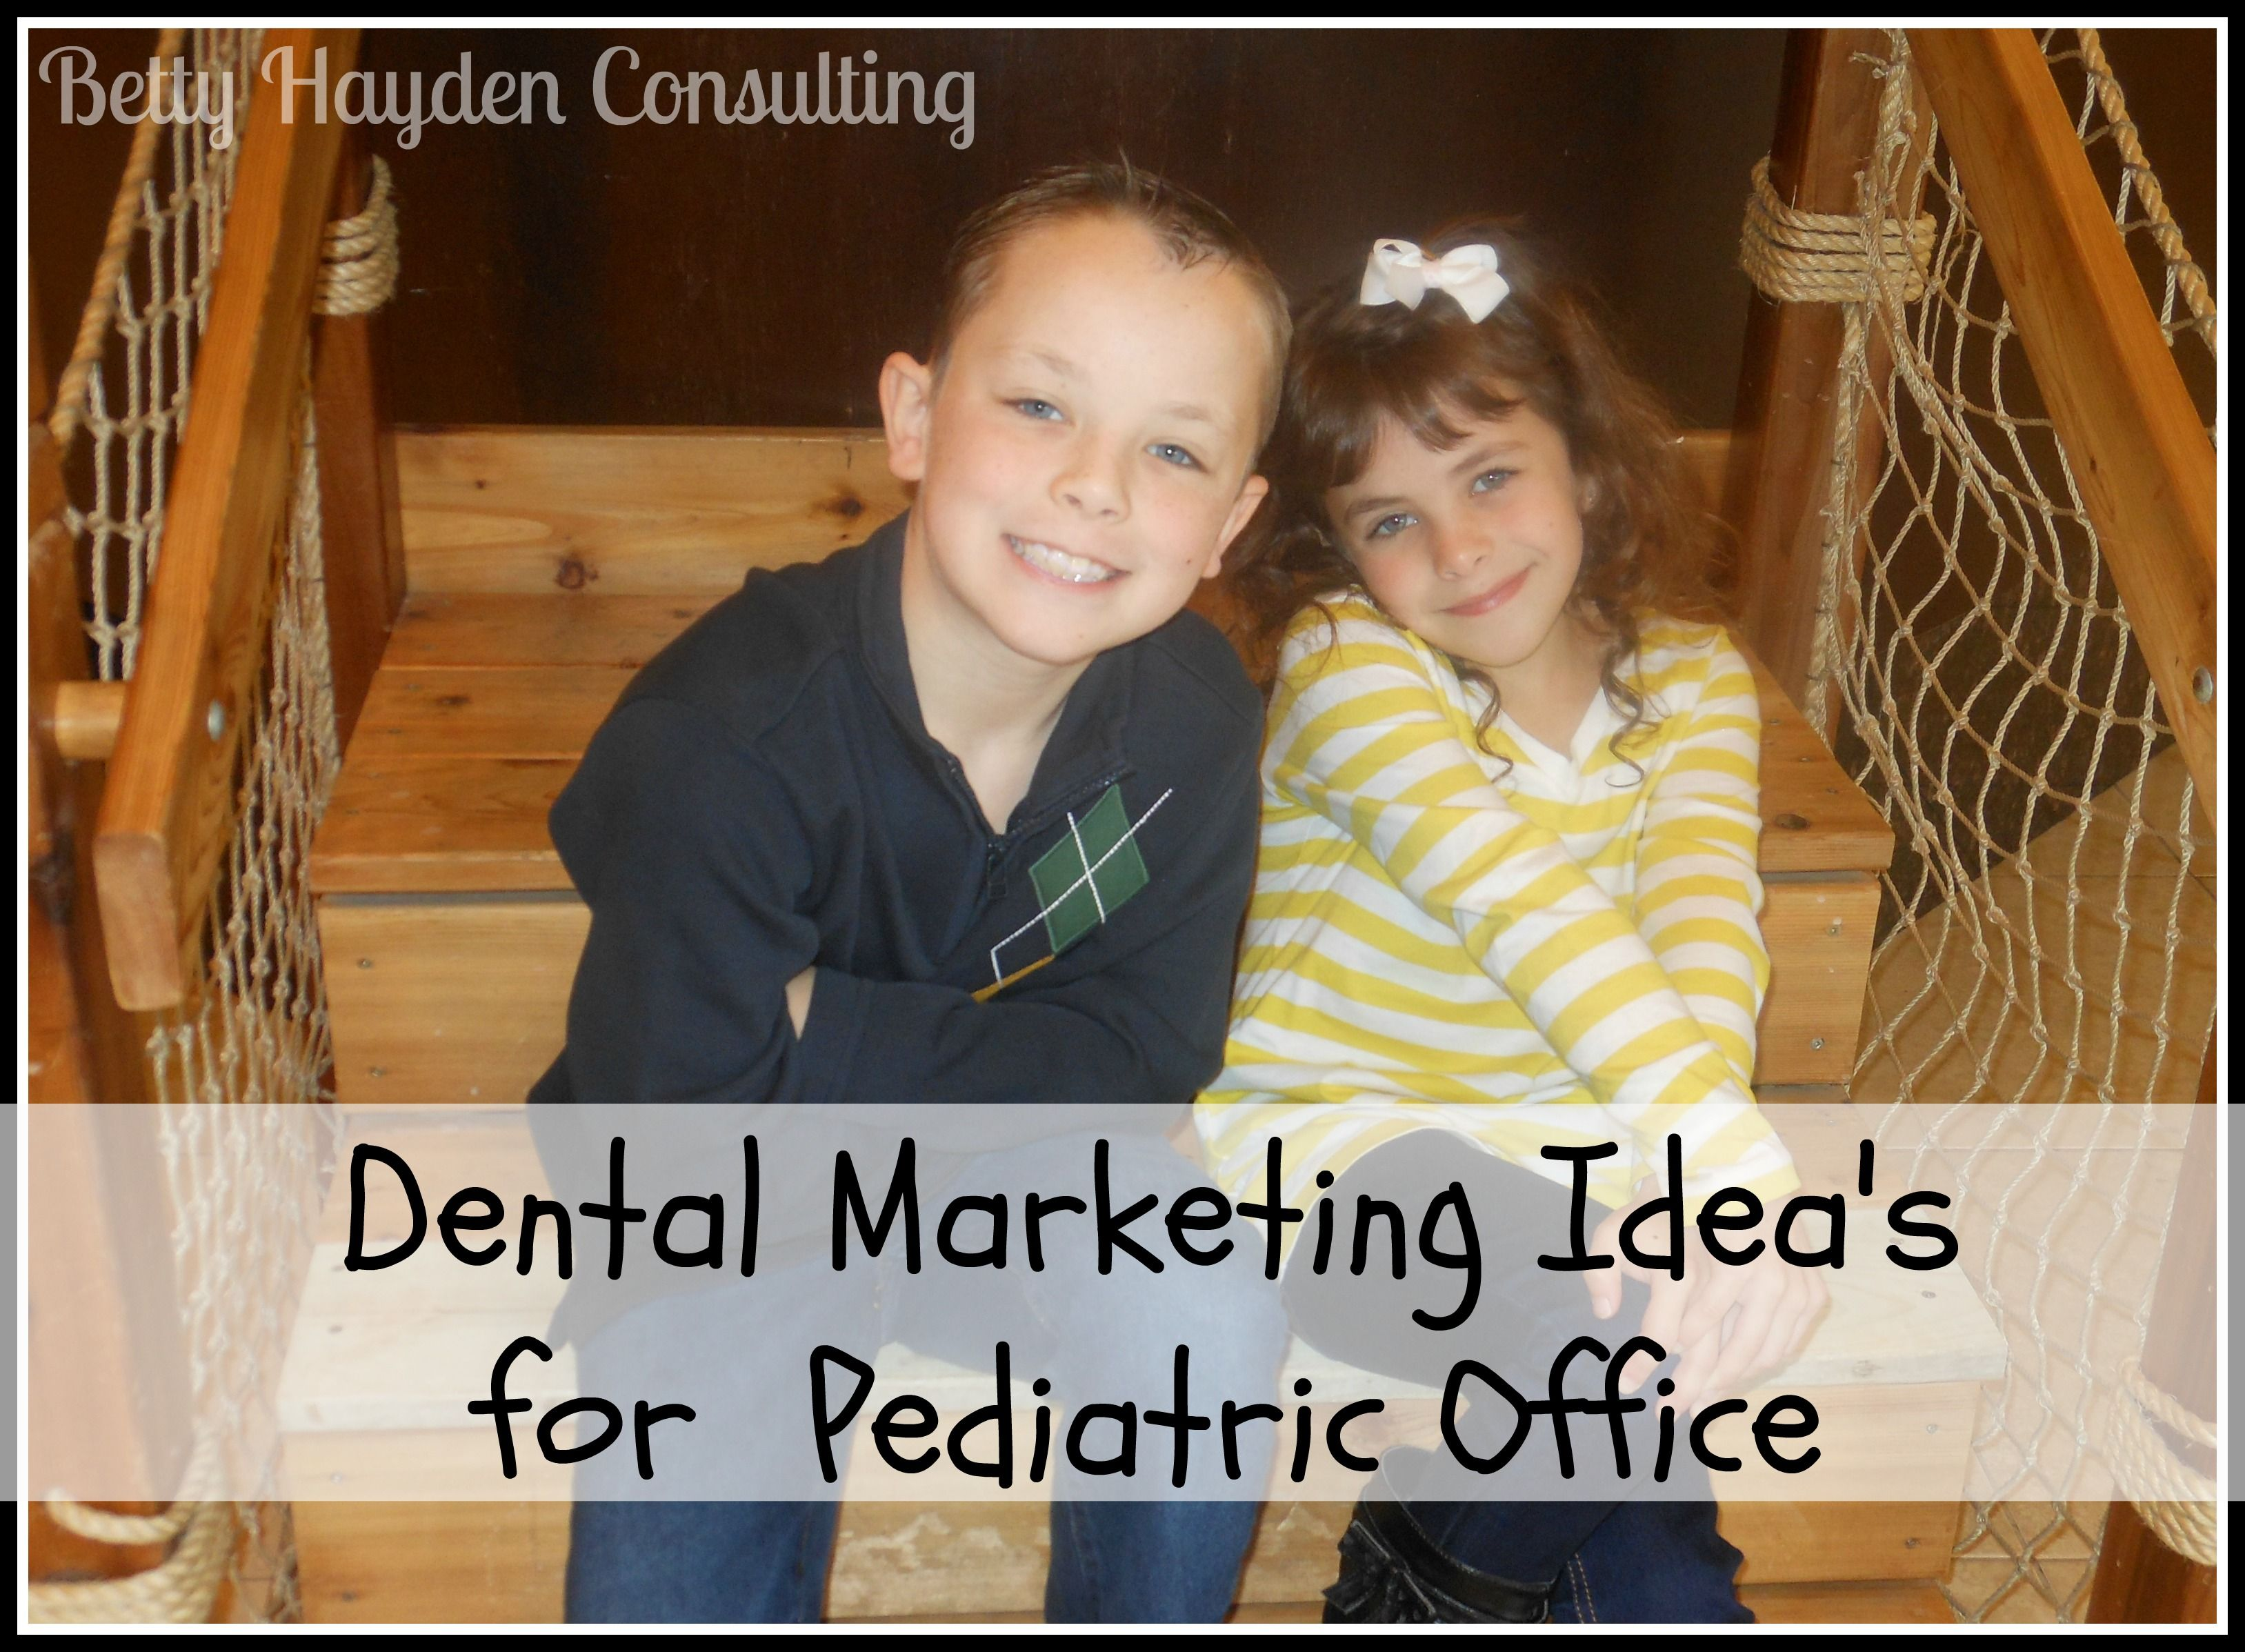 Are you looking to grow your pediatric dental practice? Here are 20+ Dental Marketing Idea's to help you make this your Best Year Yet!